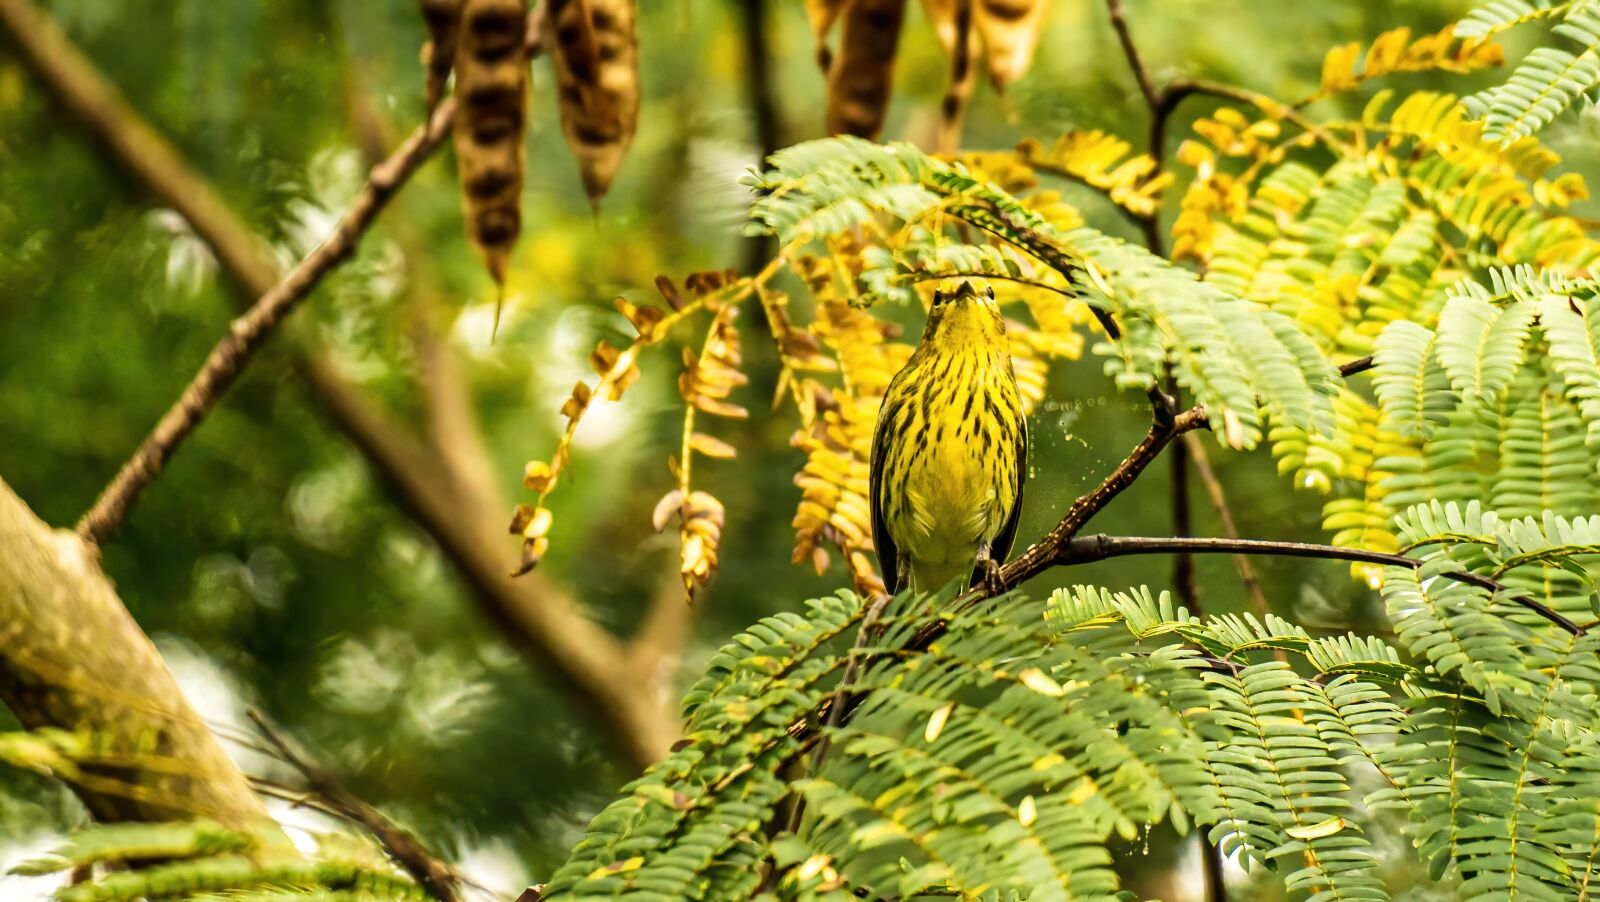 """Sony a6400 sample photo. """"Cape may warbler, warbler"""" photography"""